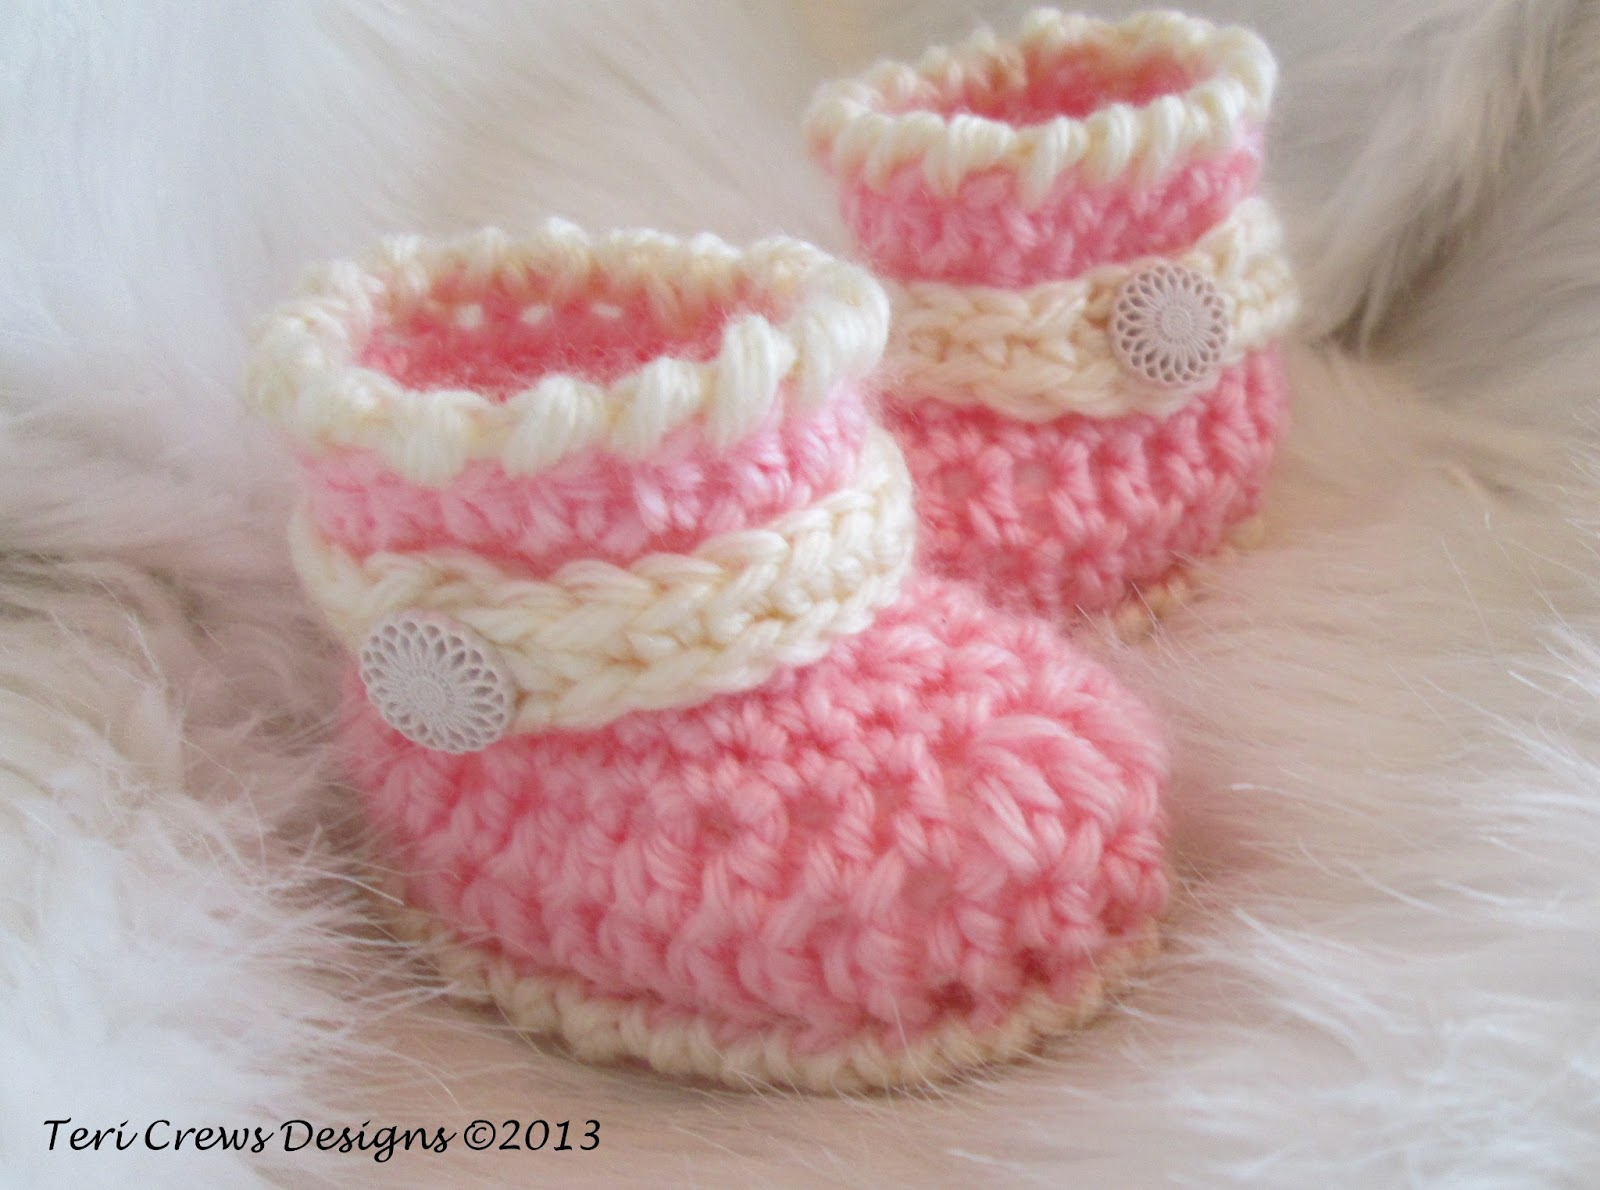 Free Crochet Patterns To Download For Babies : Teris Blog: Free Pattern, Cute Baby Boots